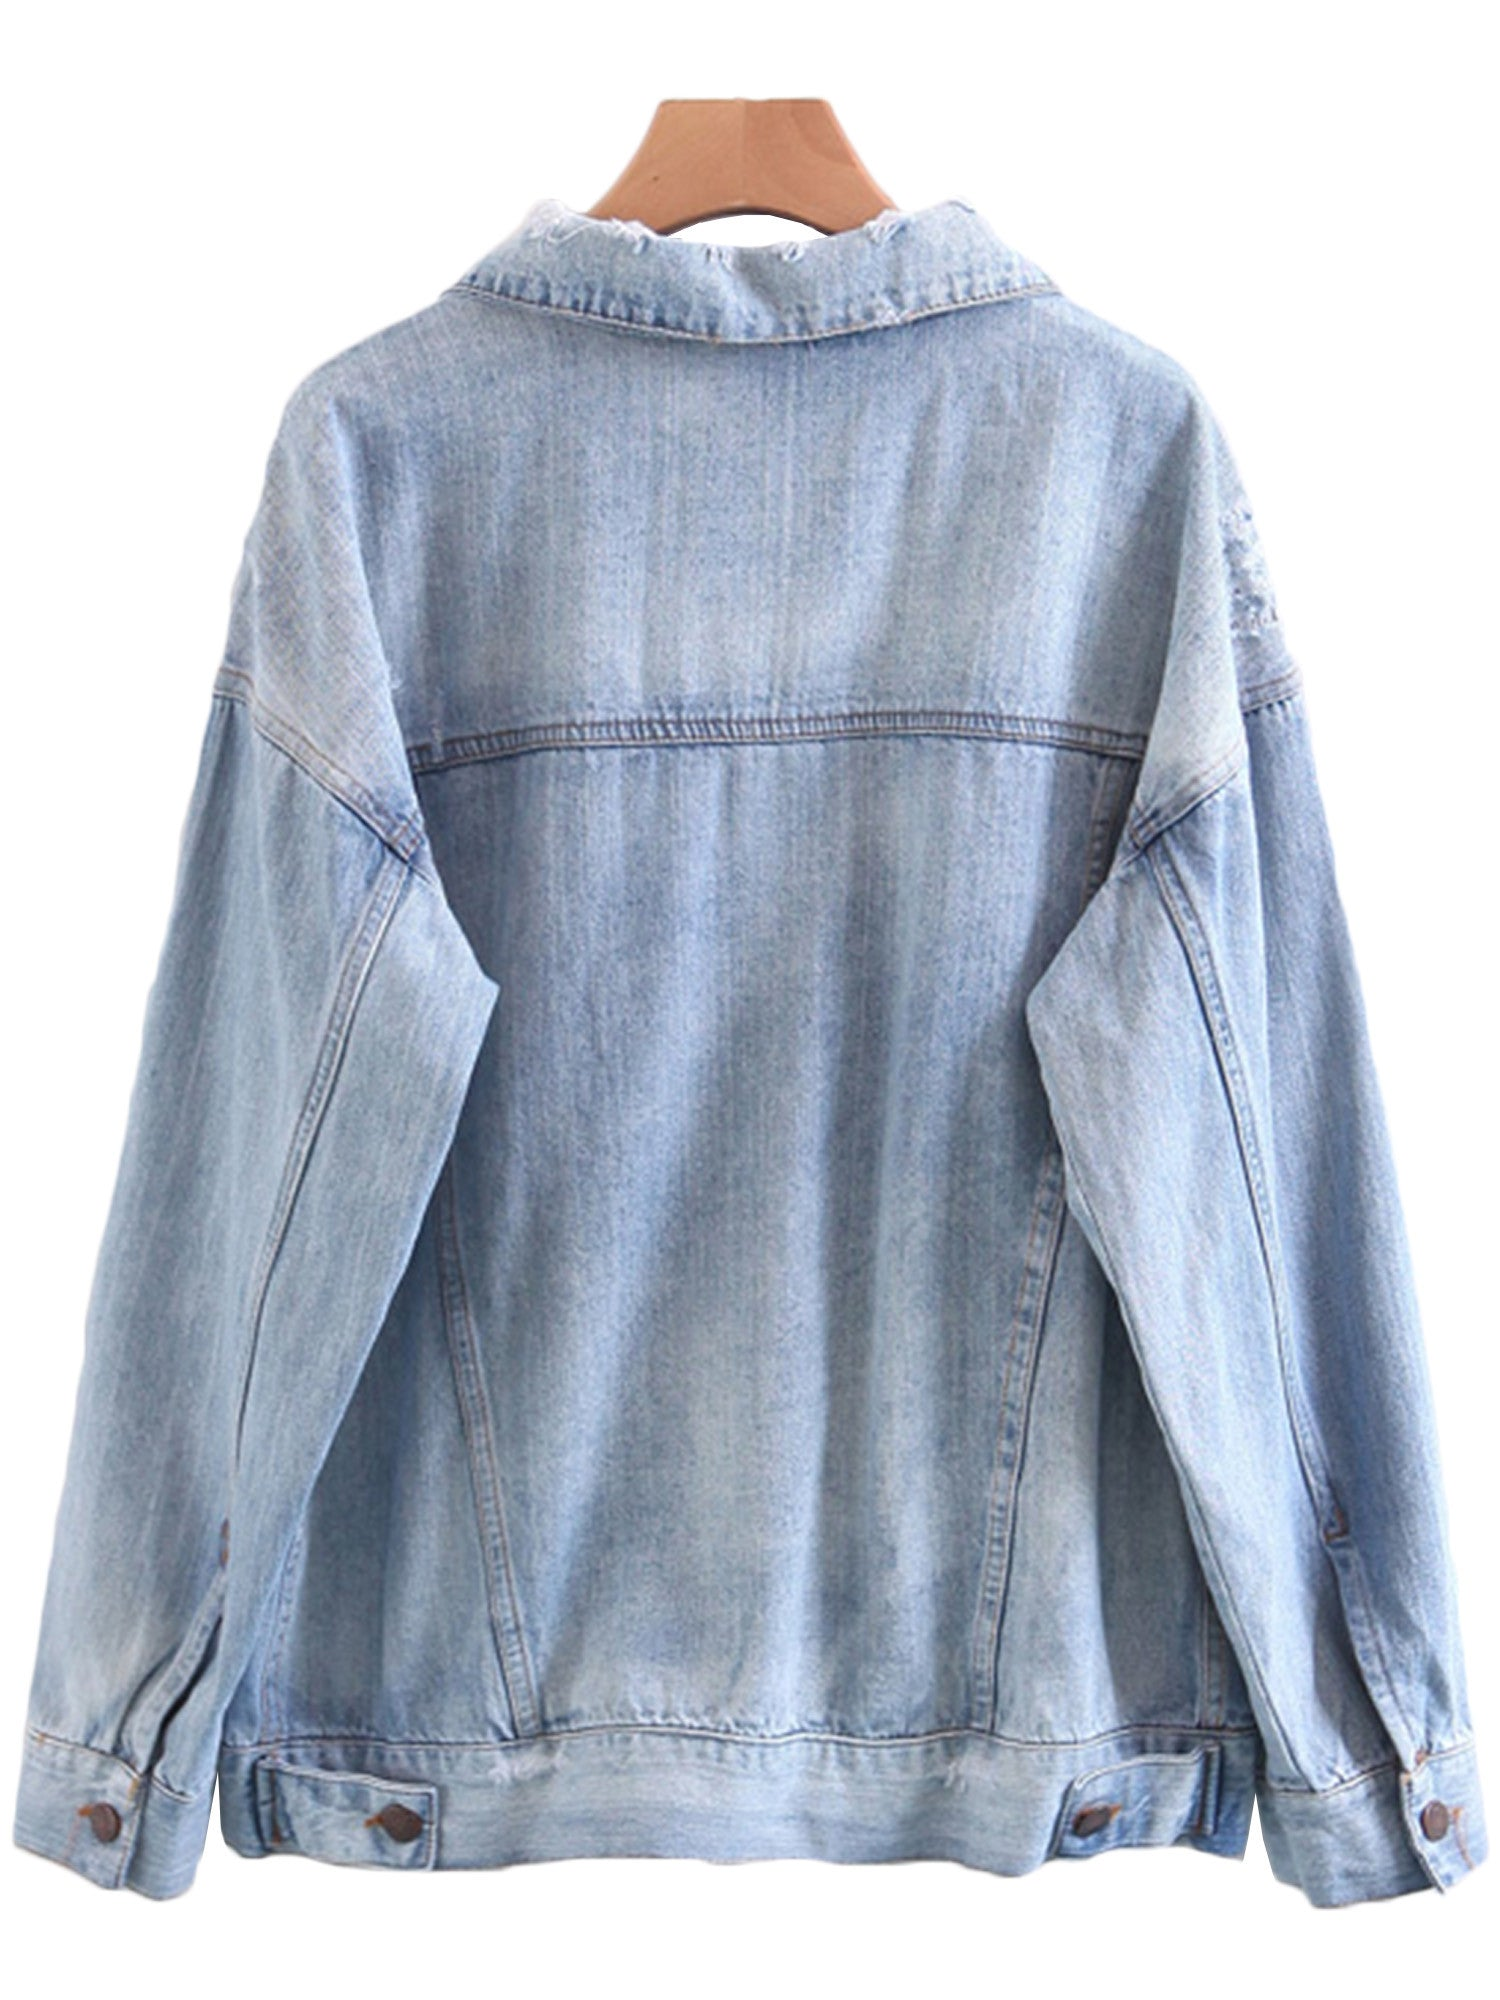 'Lupe' Washed Denim Jacket